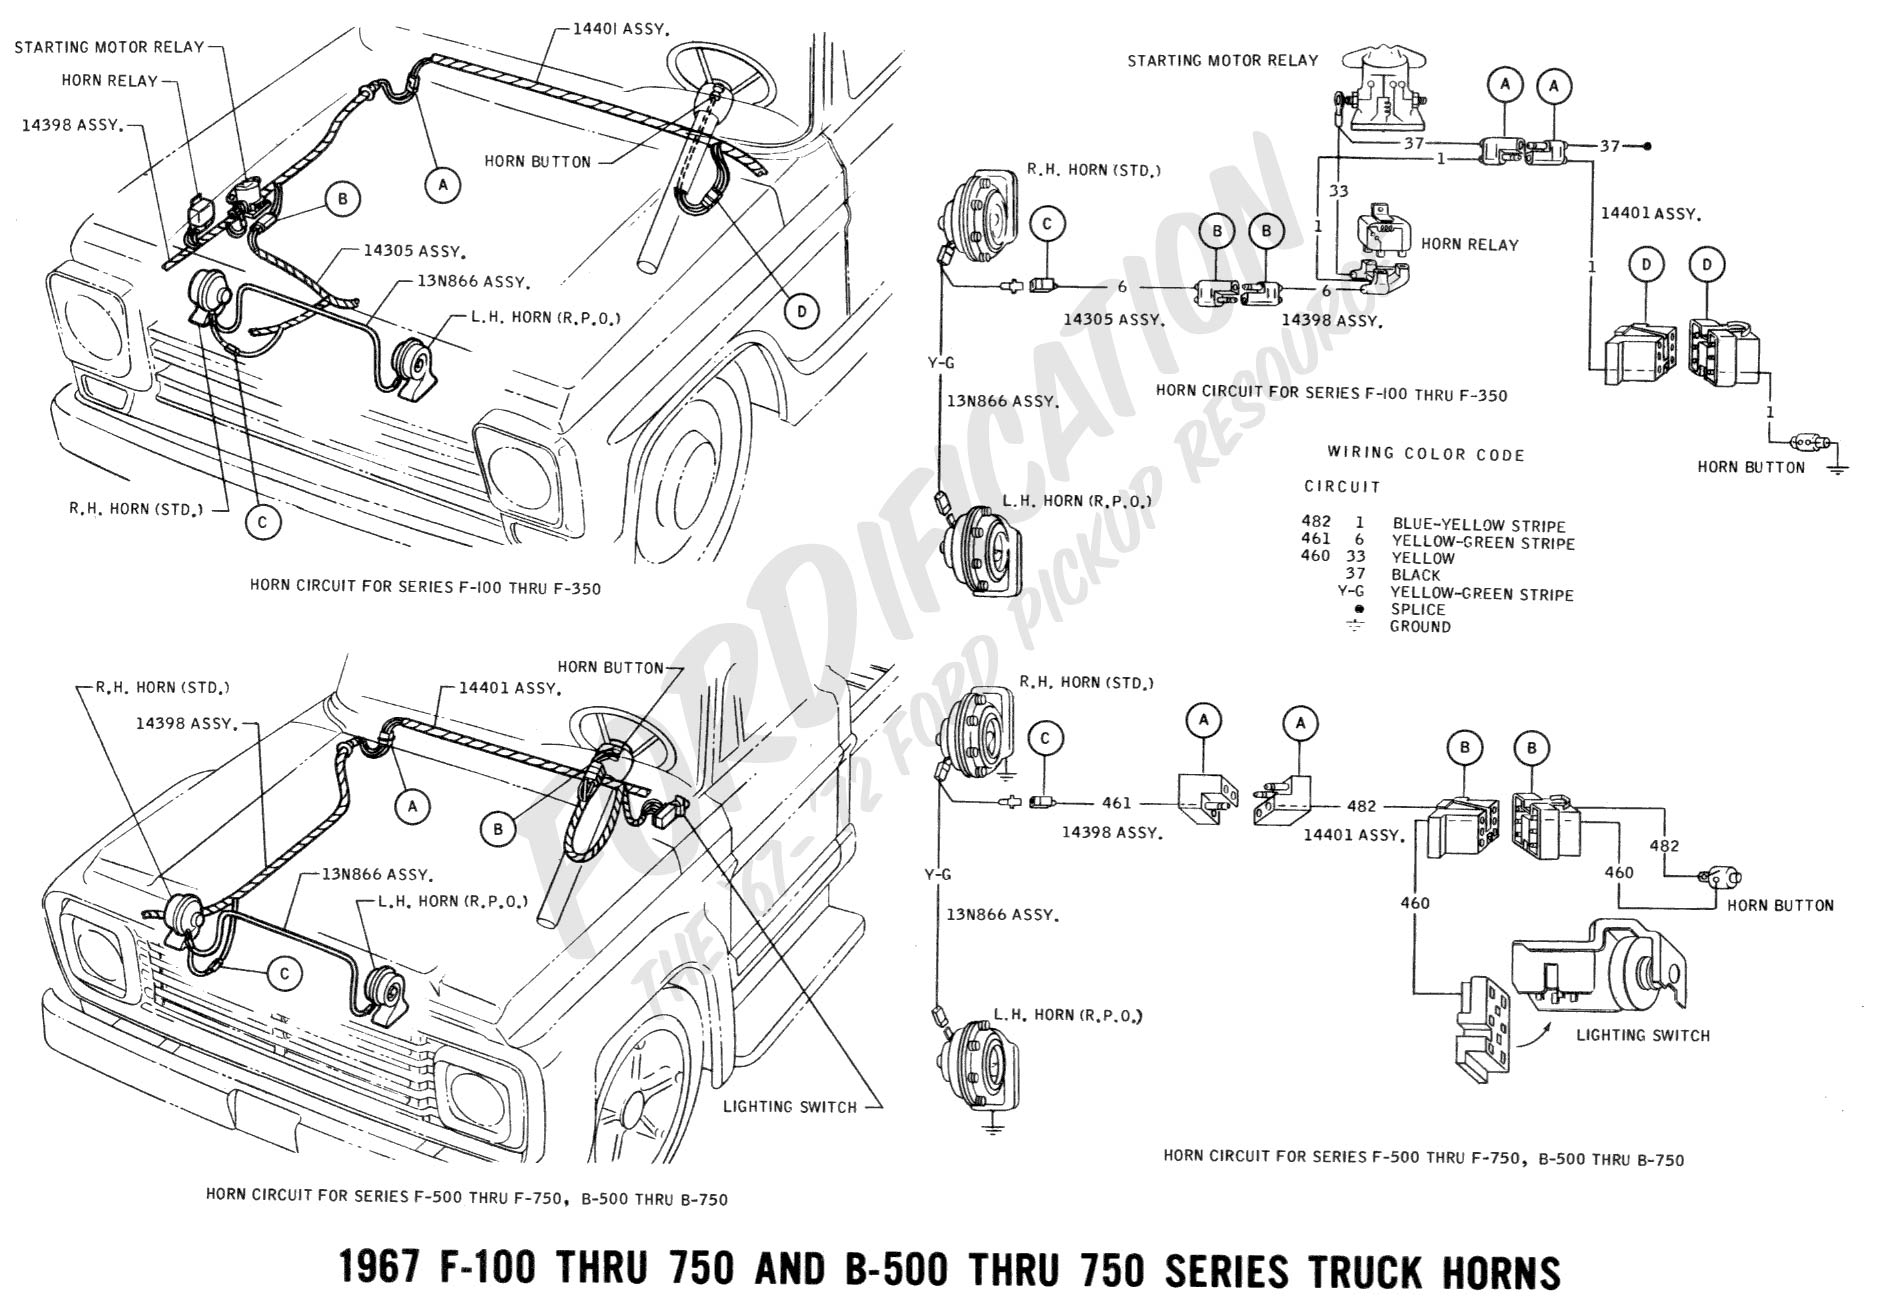 1956 ford coil wiring wiring diagram detailedford maverick ignition coil wiring wiring diagram data ford 302 ignition wiring diagram 1956 ford coil wiring